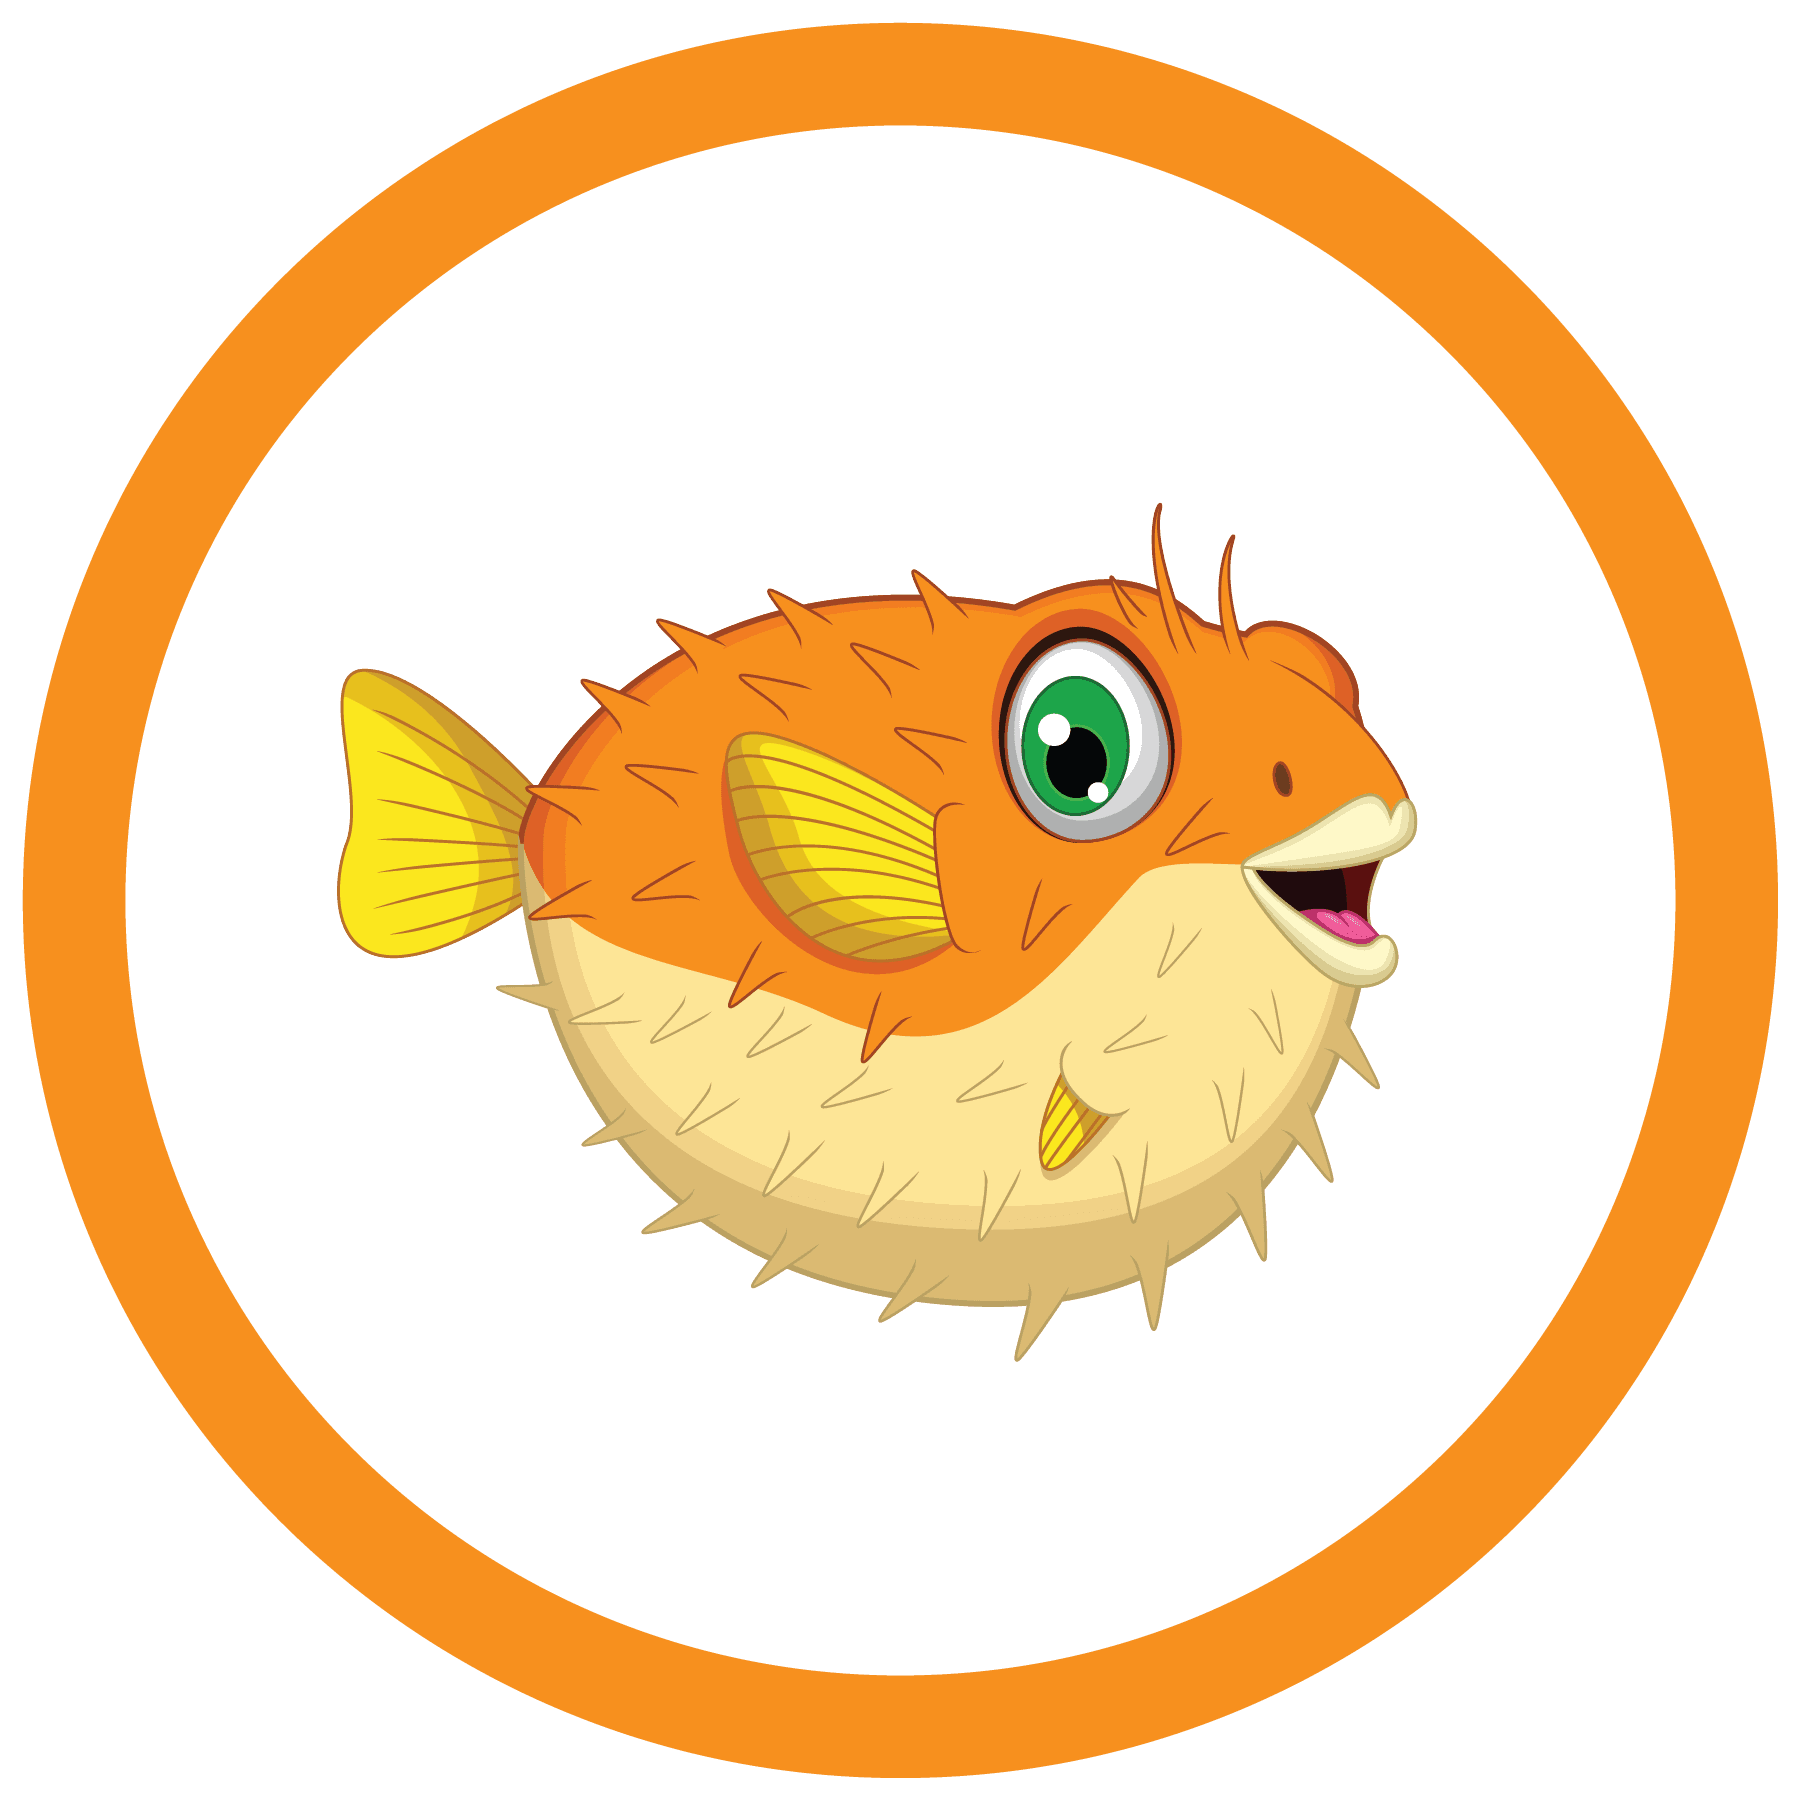 Clipart balloon fish. Balloons graphics illustrations free